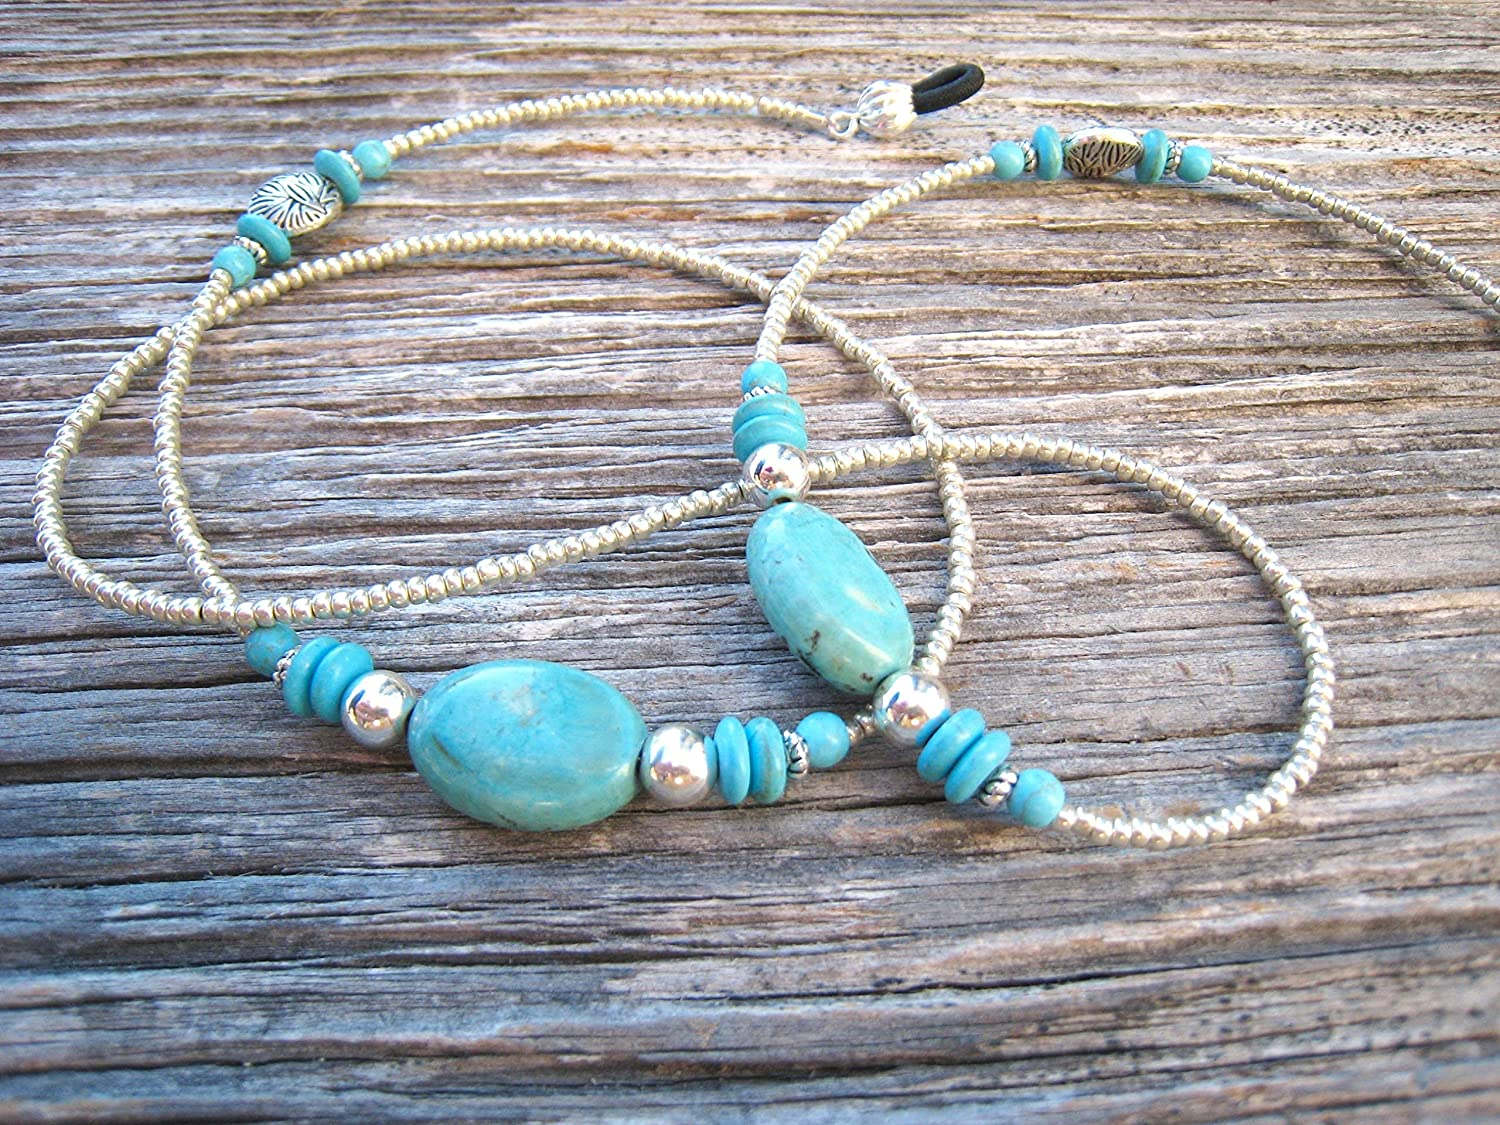 Silvertone Imitation-Turquoise Beaded Eyeglass Chain Handmade